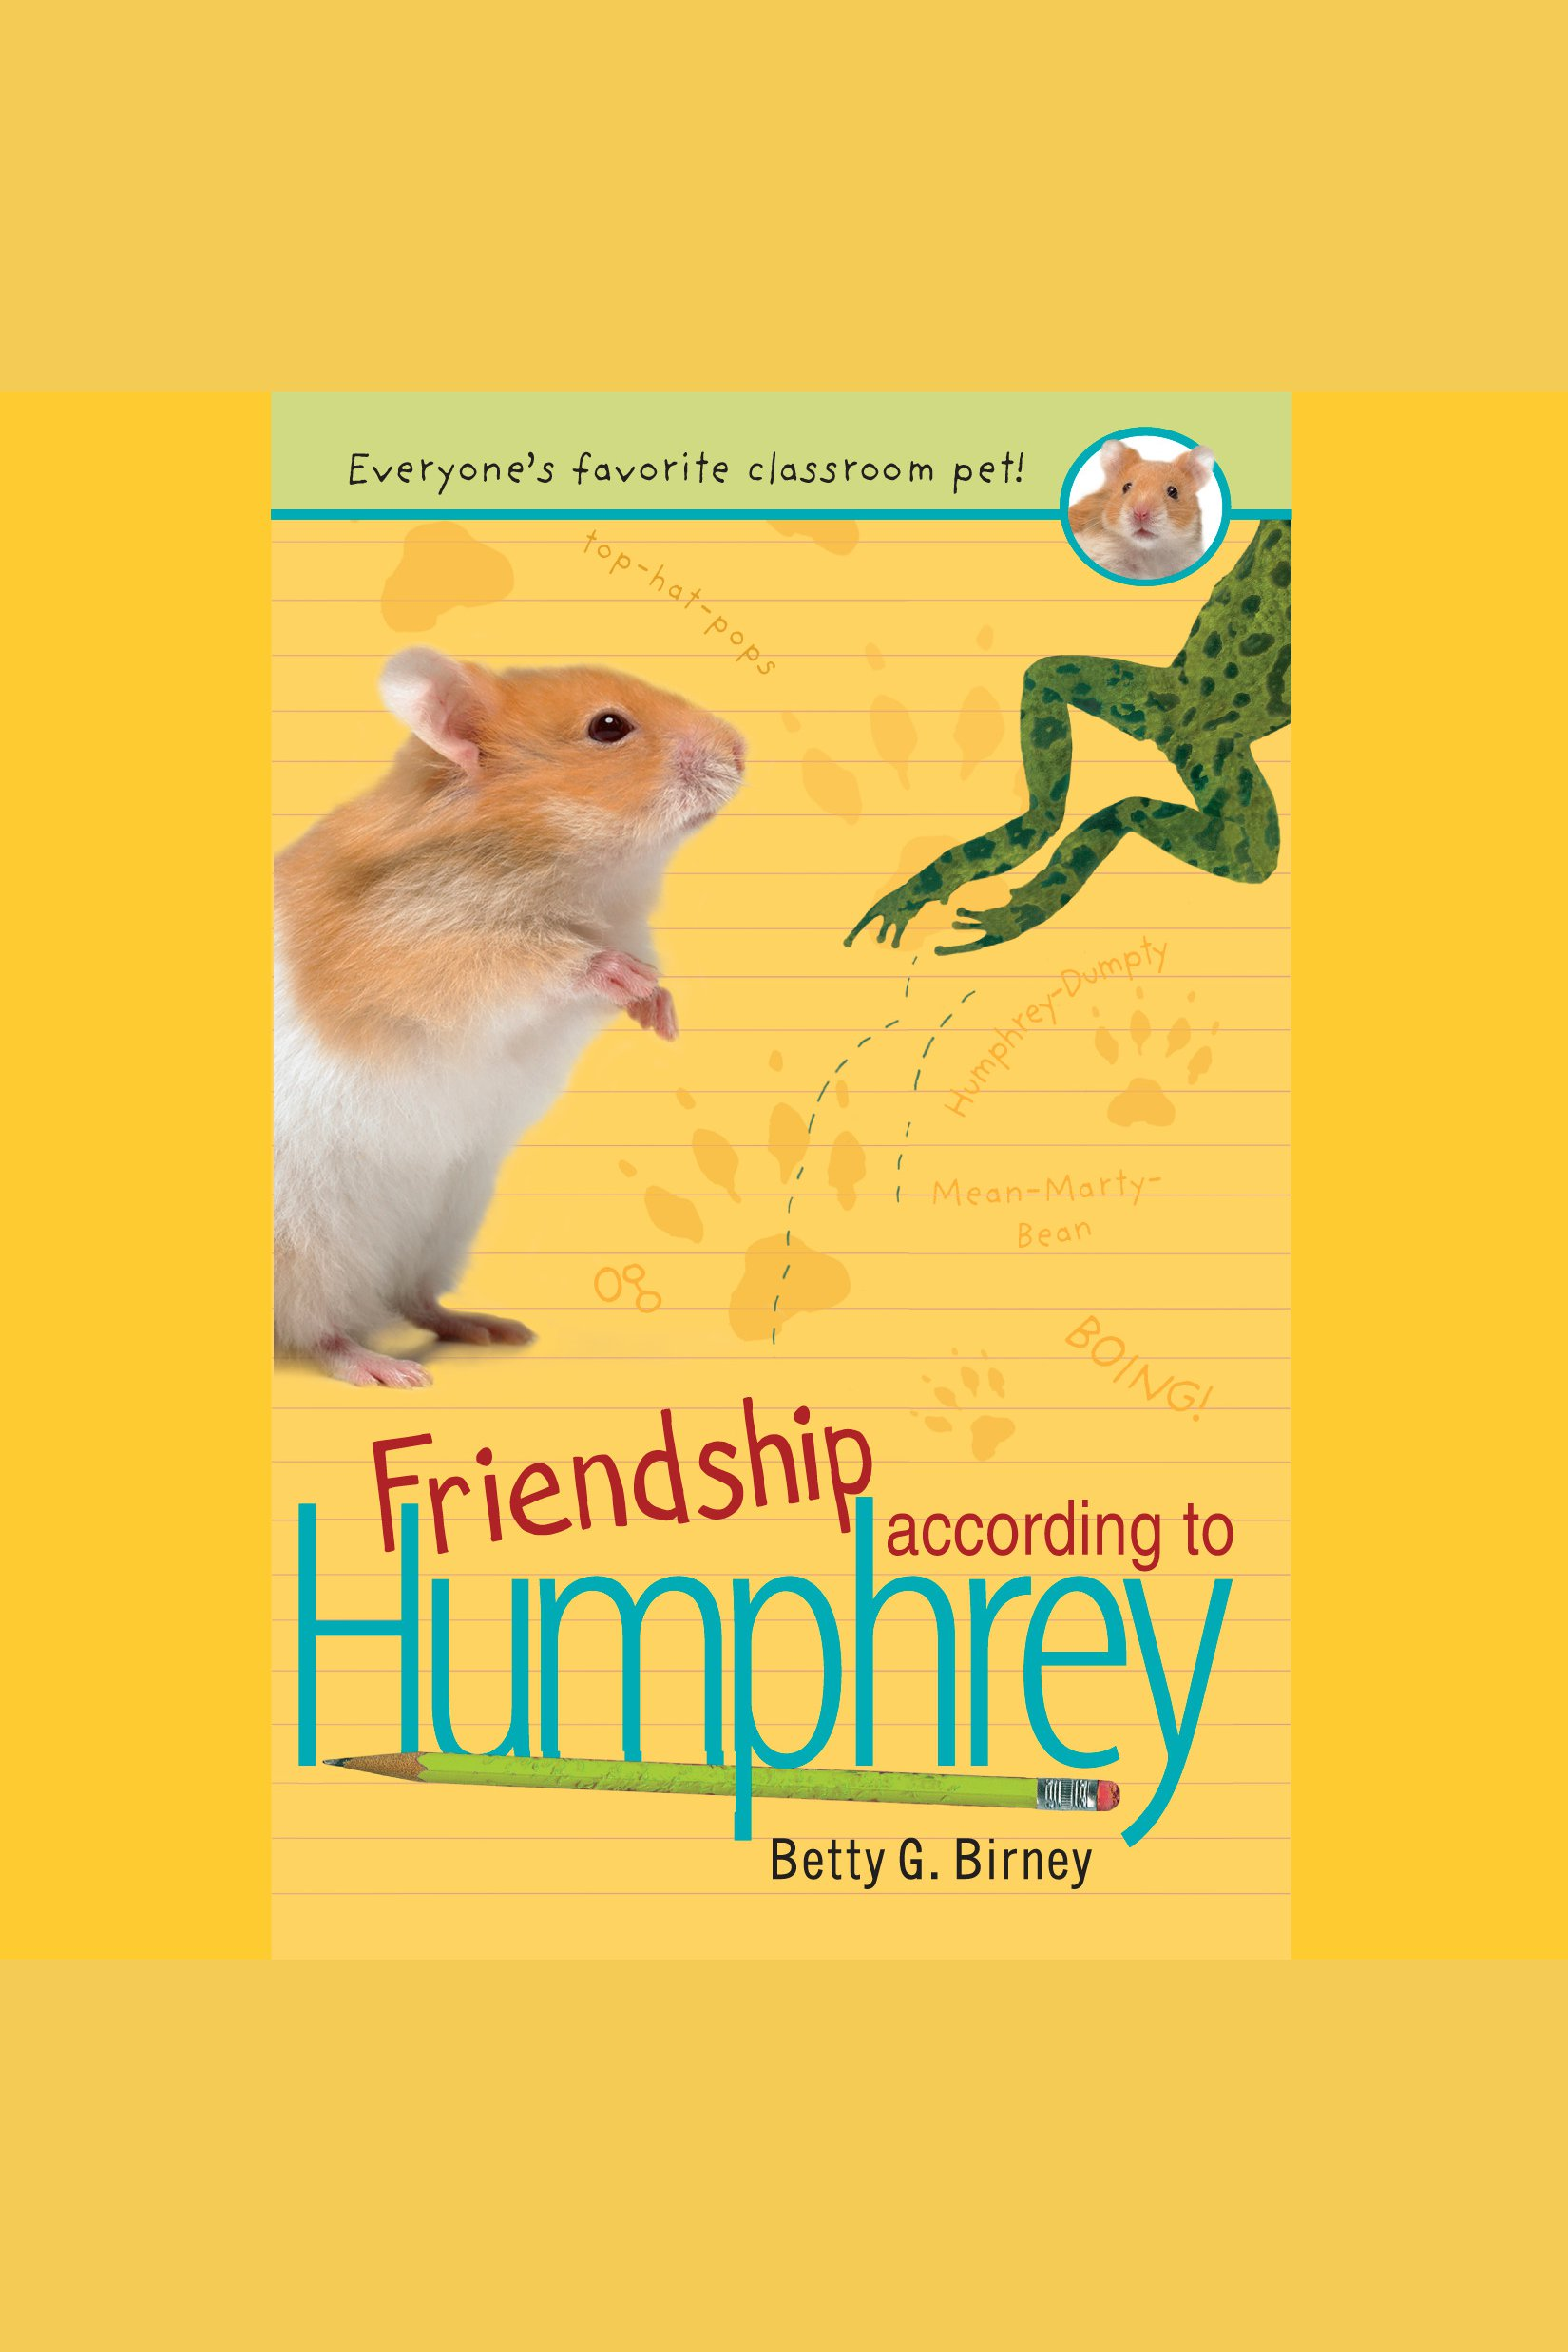 Friendship according to Humphrey cover image